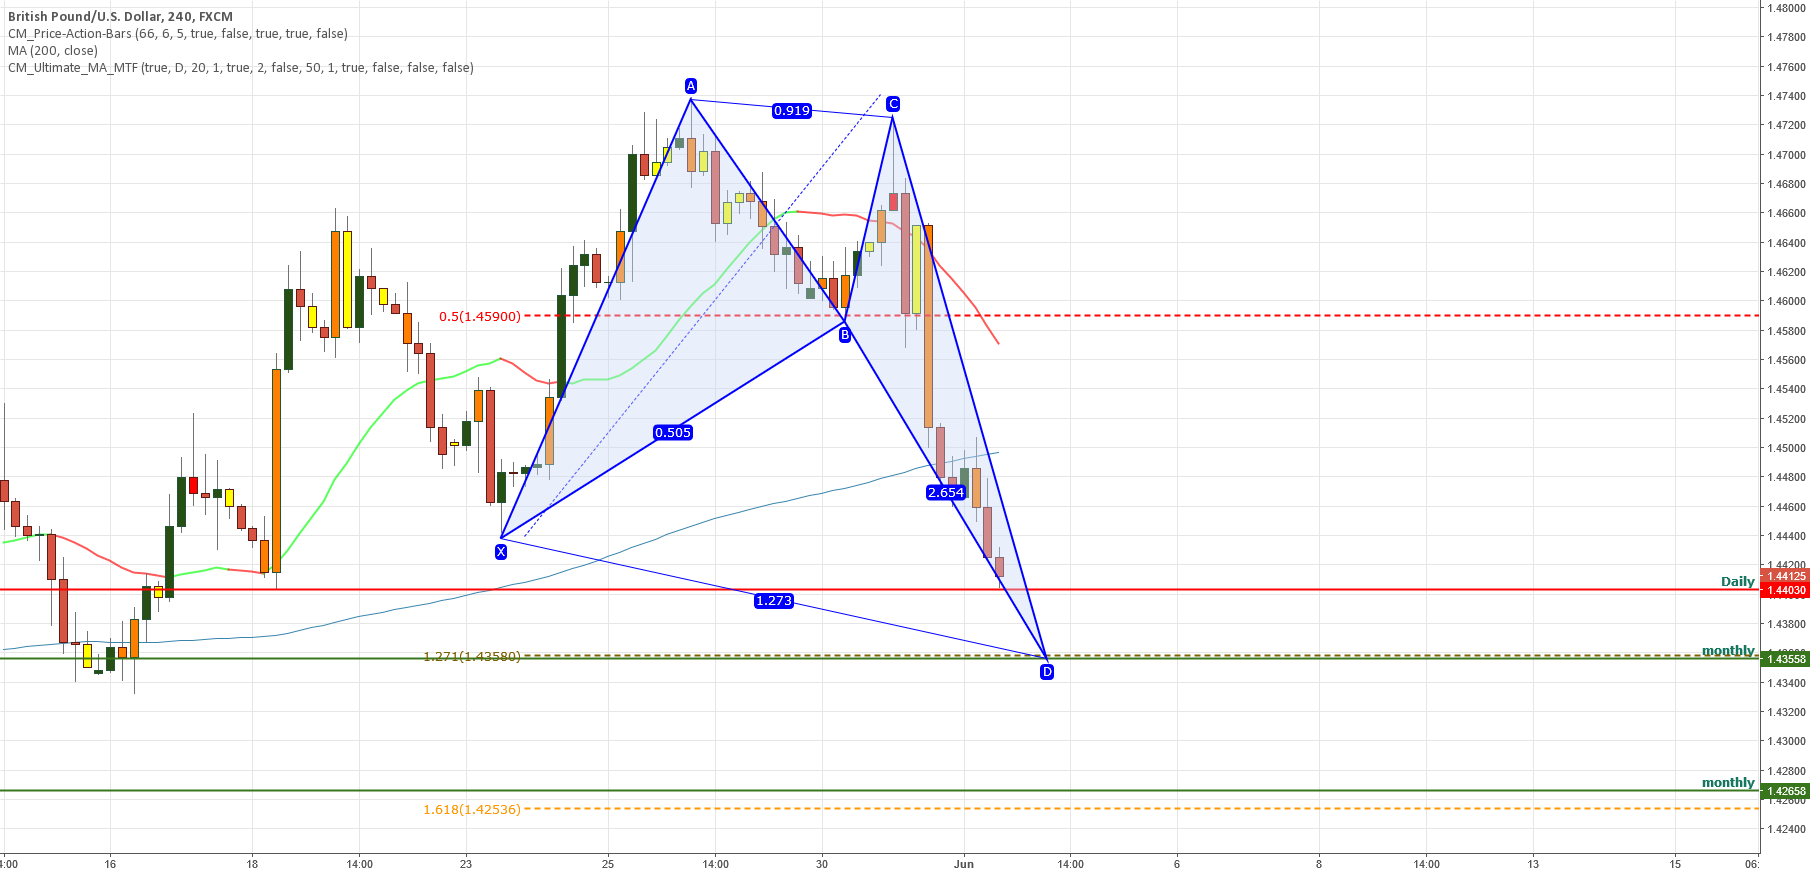 GBPUSD POSSIBLE BAT PATTERN